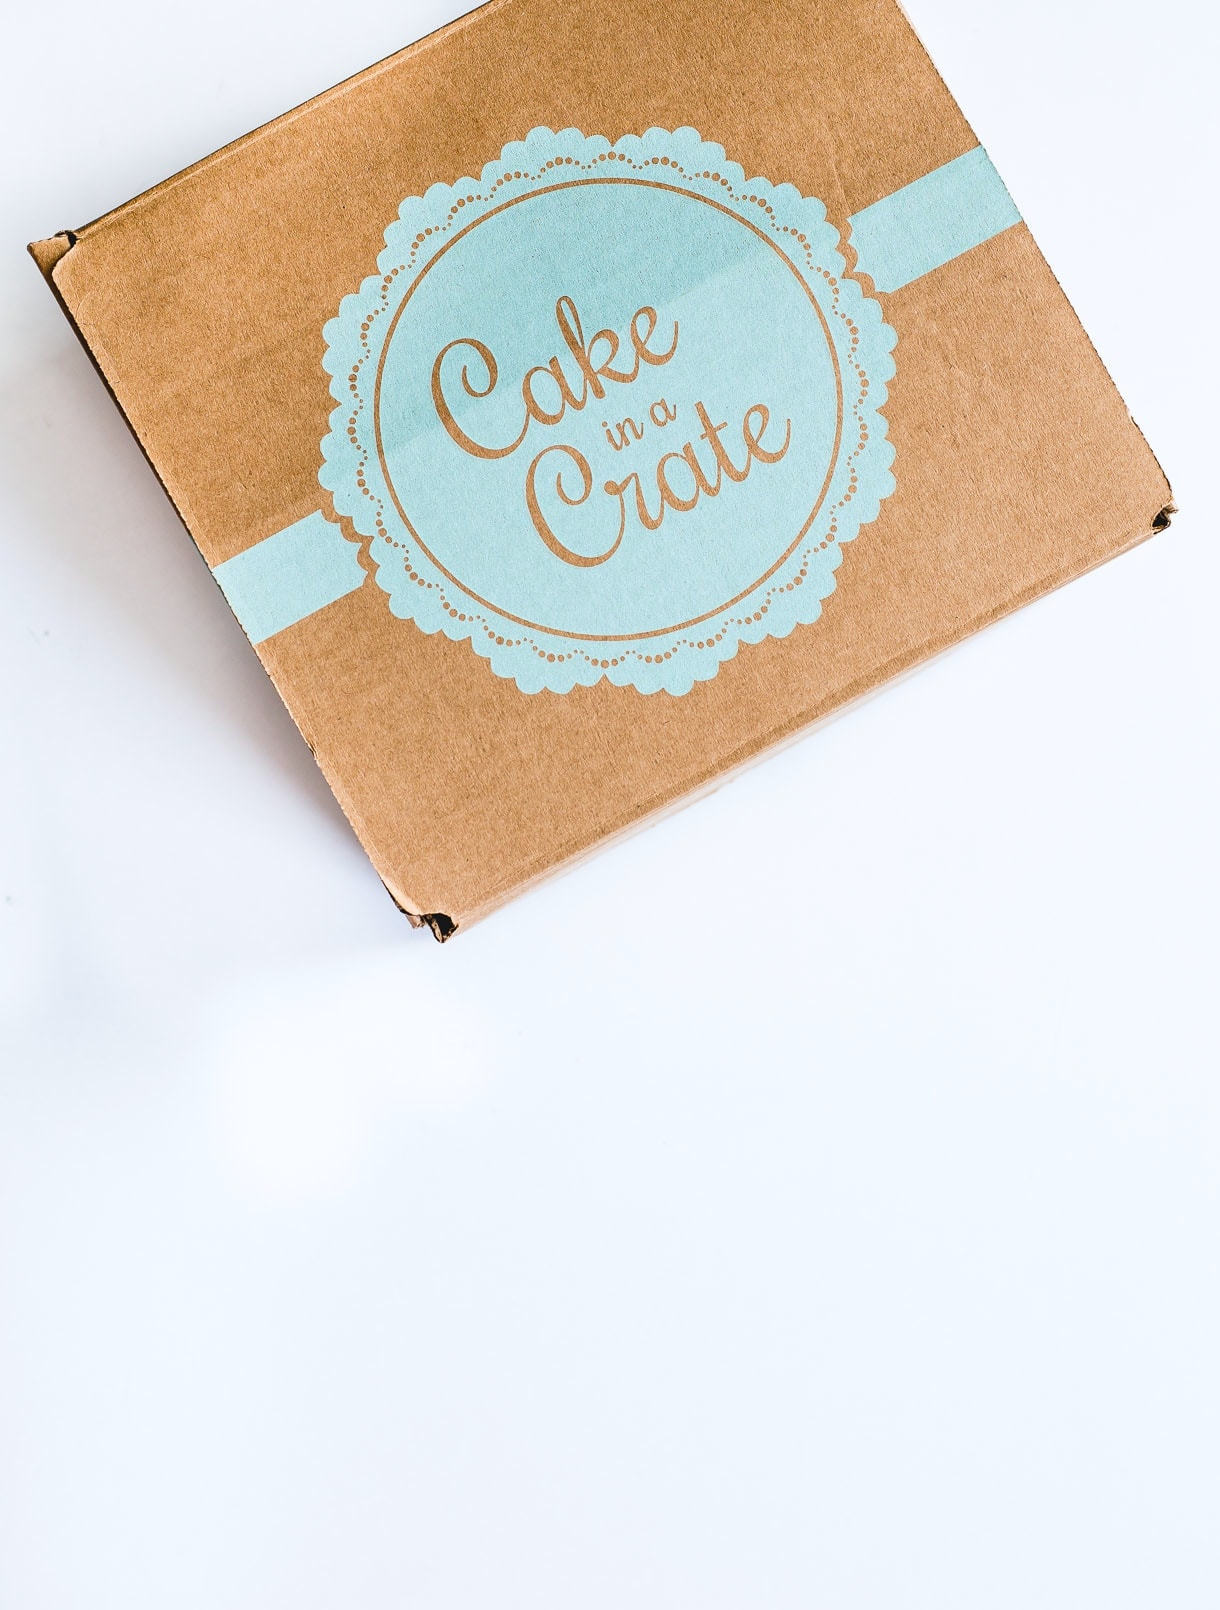 Order your Cake in a Crate!